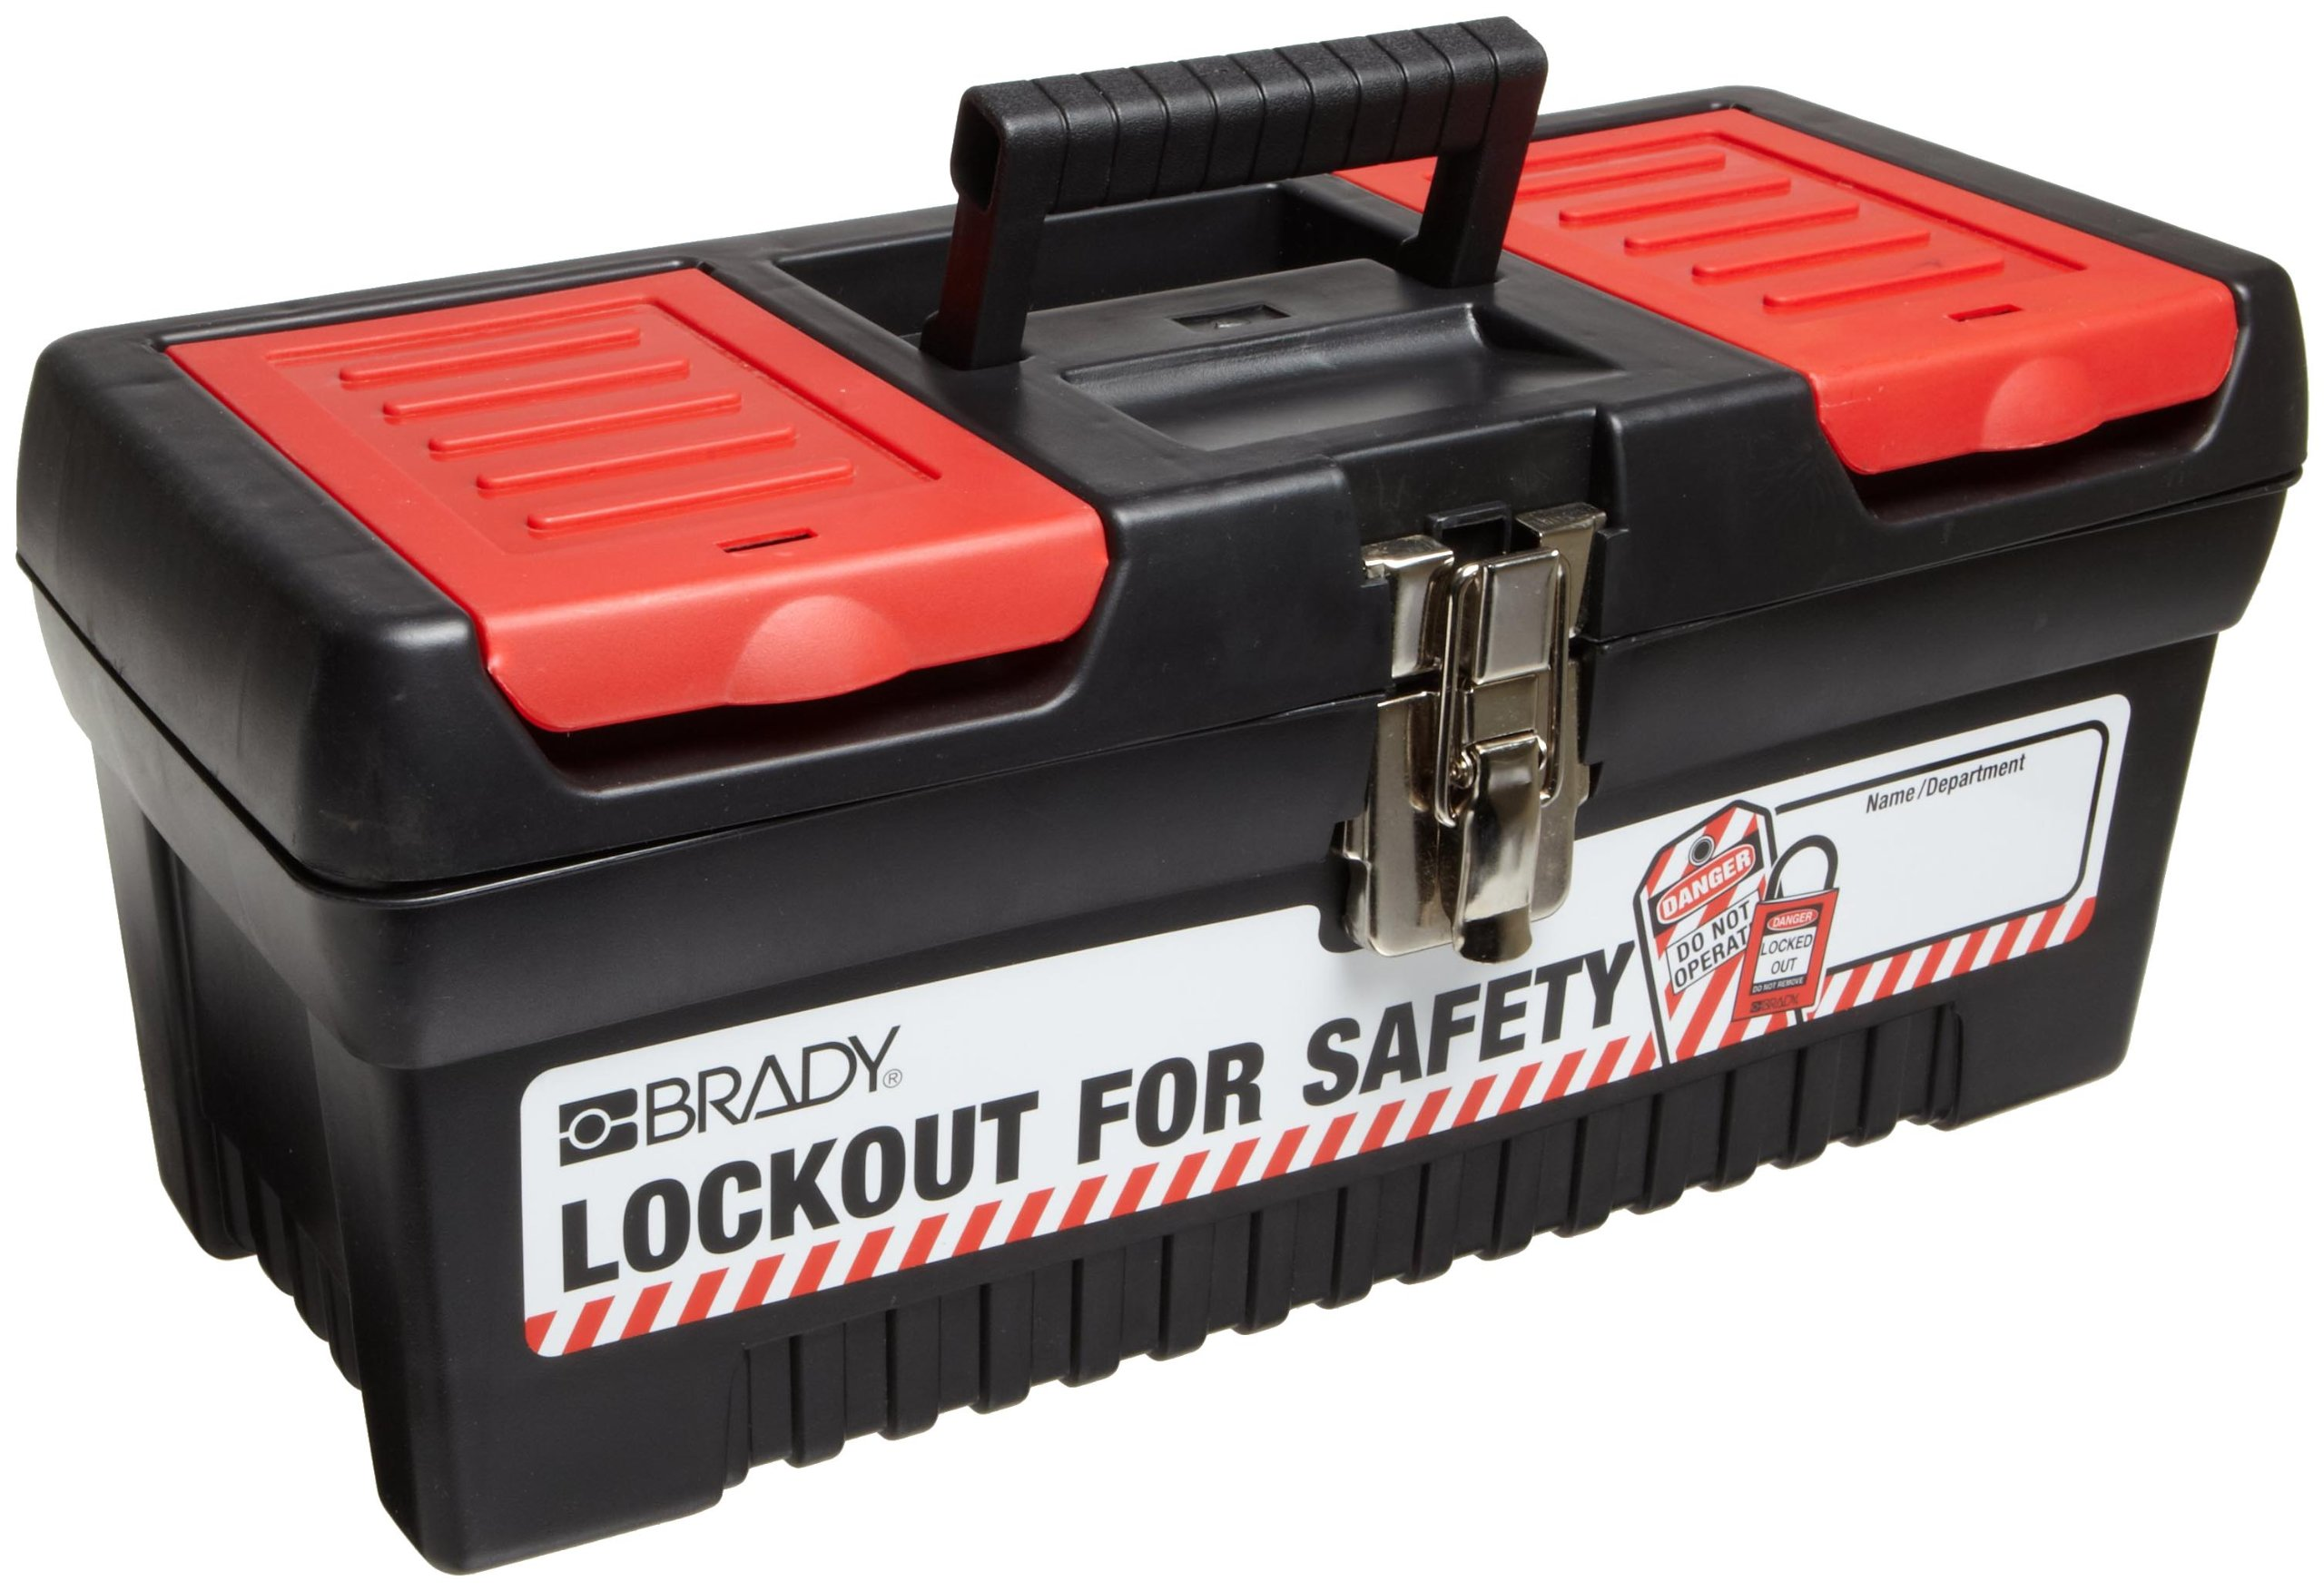 Brady Polypropylene Lockout Toolbox, Legend''Lockout For Safety'', Medium, 7.8'' Height, 16.2'' Width, 7.3'' Depth